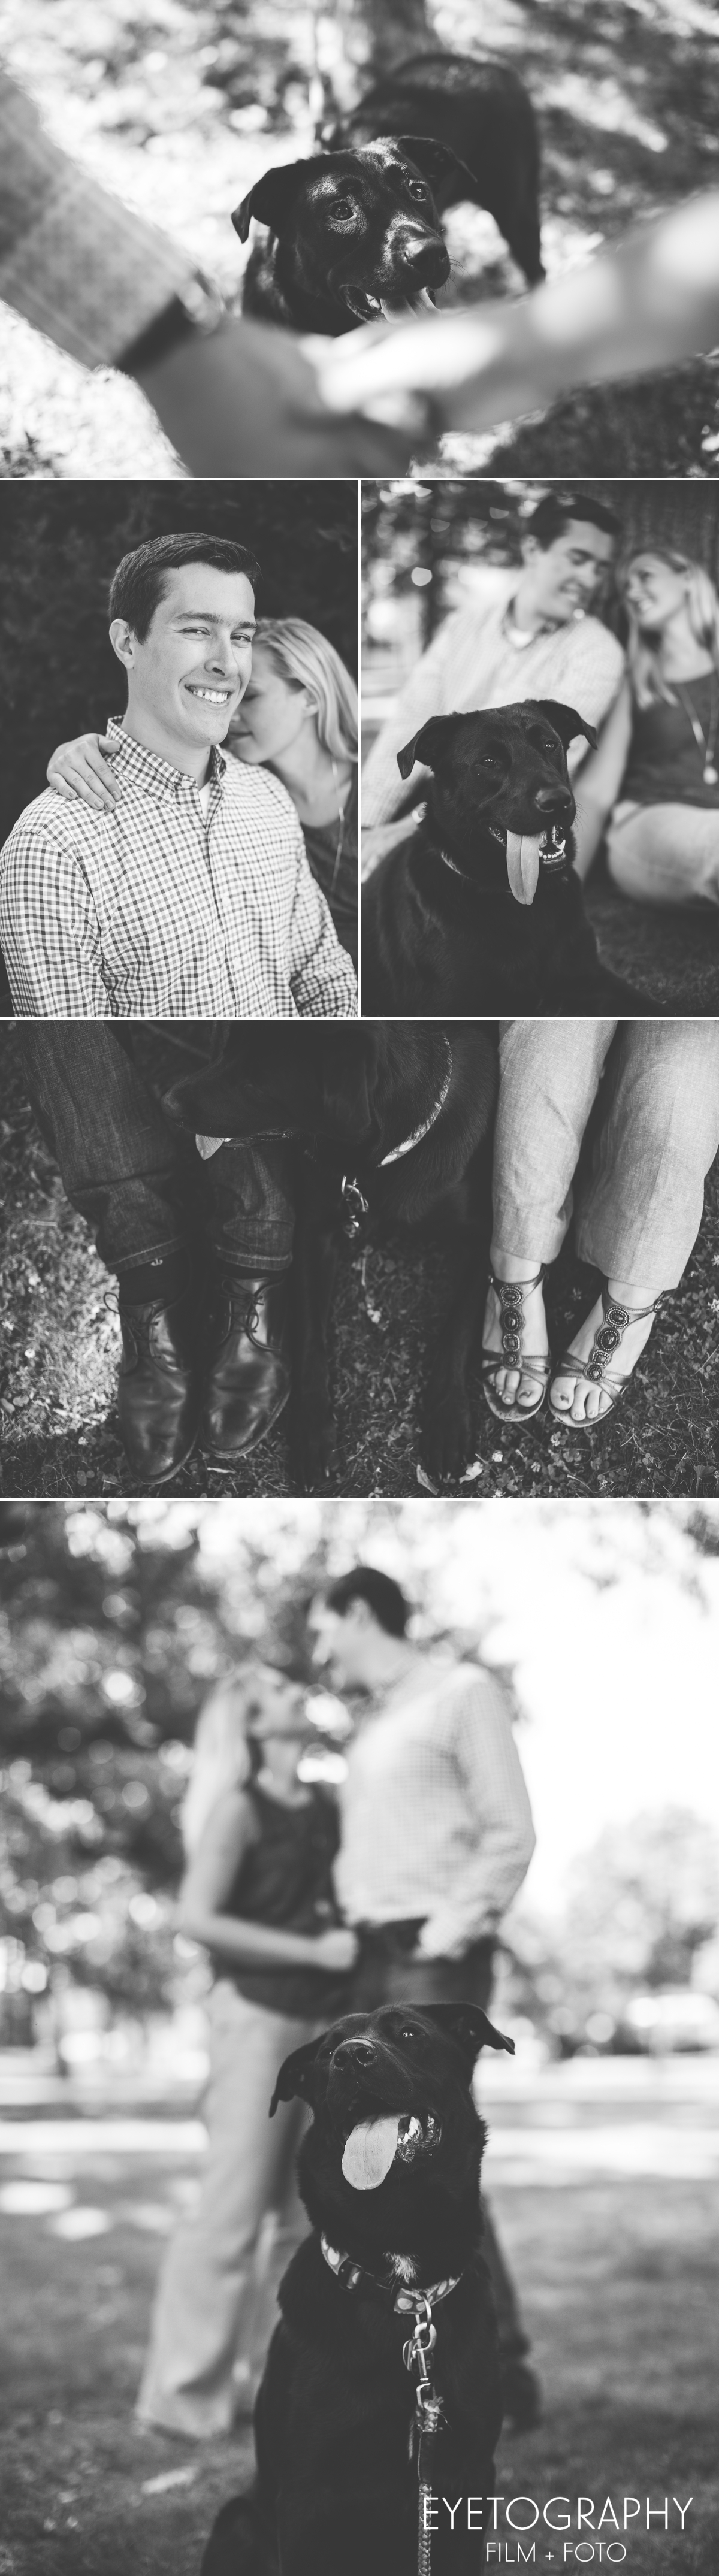 Minnehaha Falls Park Engagement Photography | Eyetography Film + Foto | Anna and Garrett 5